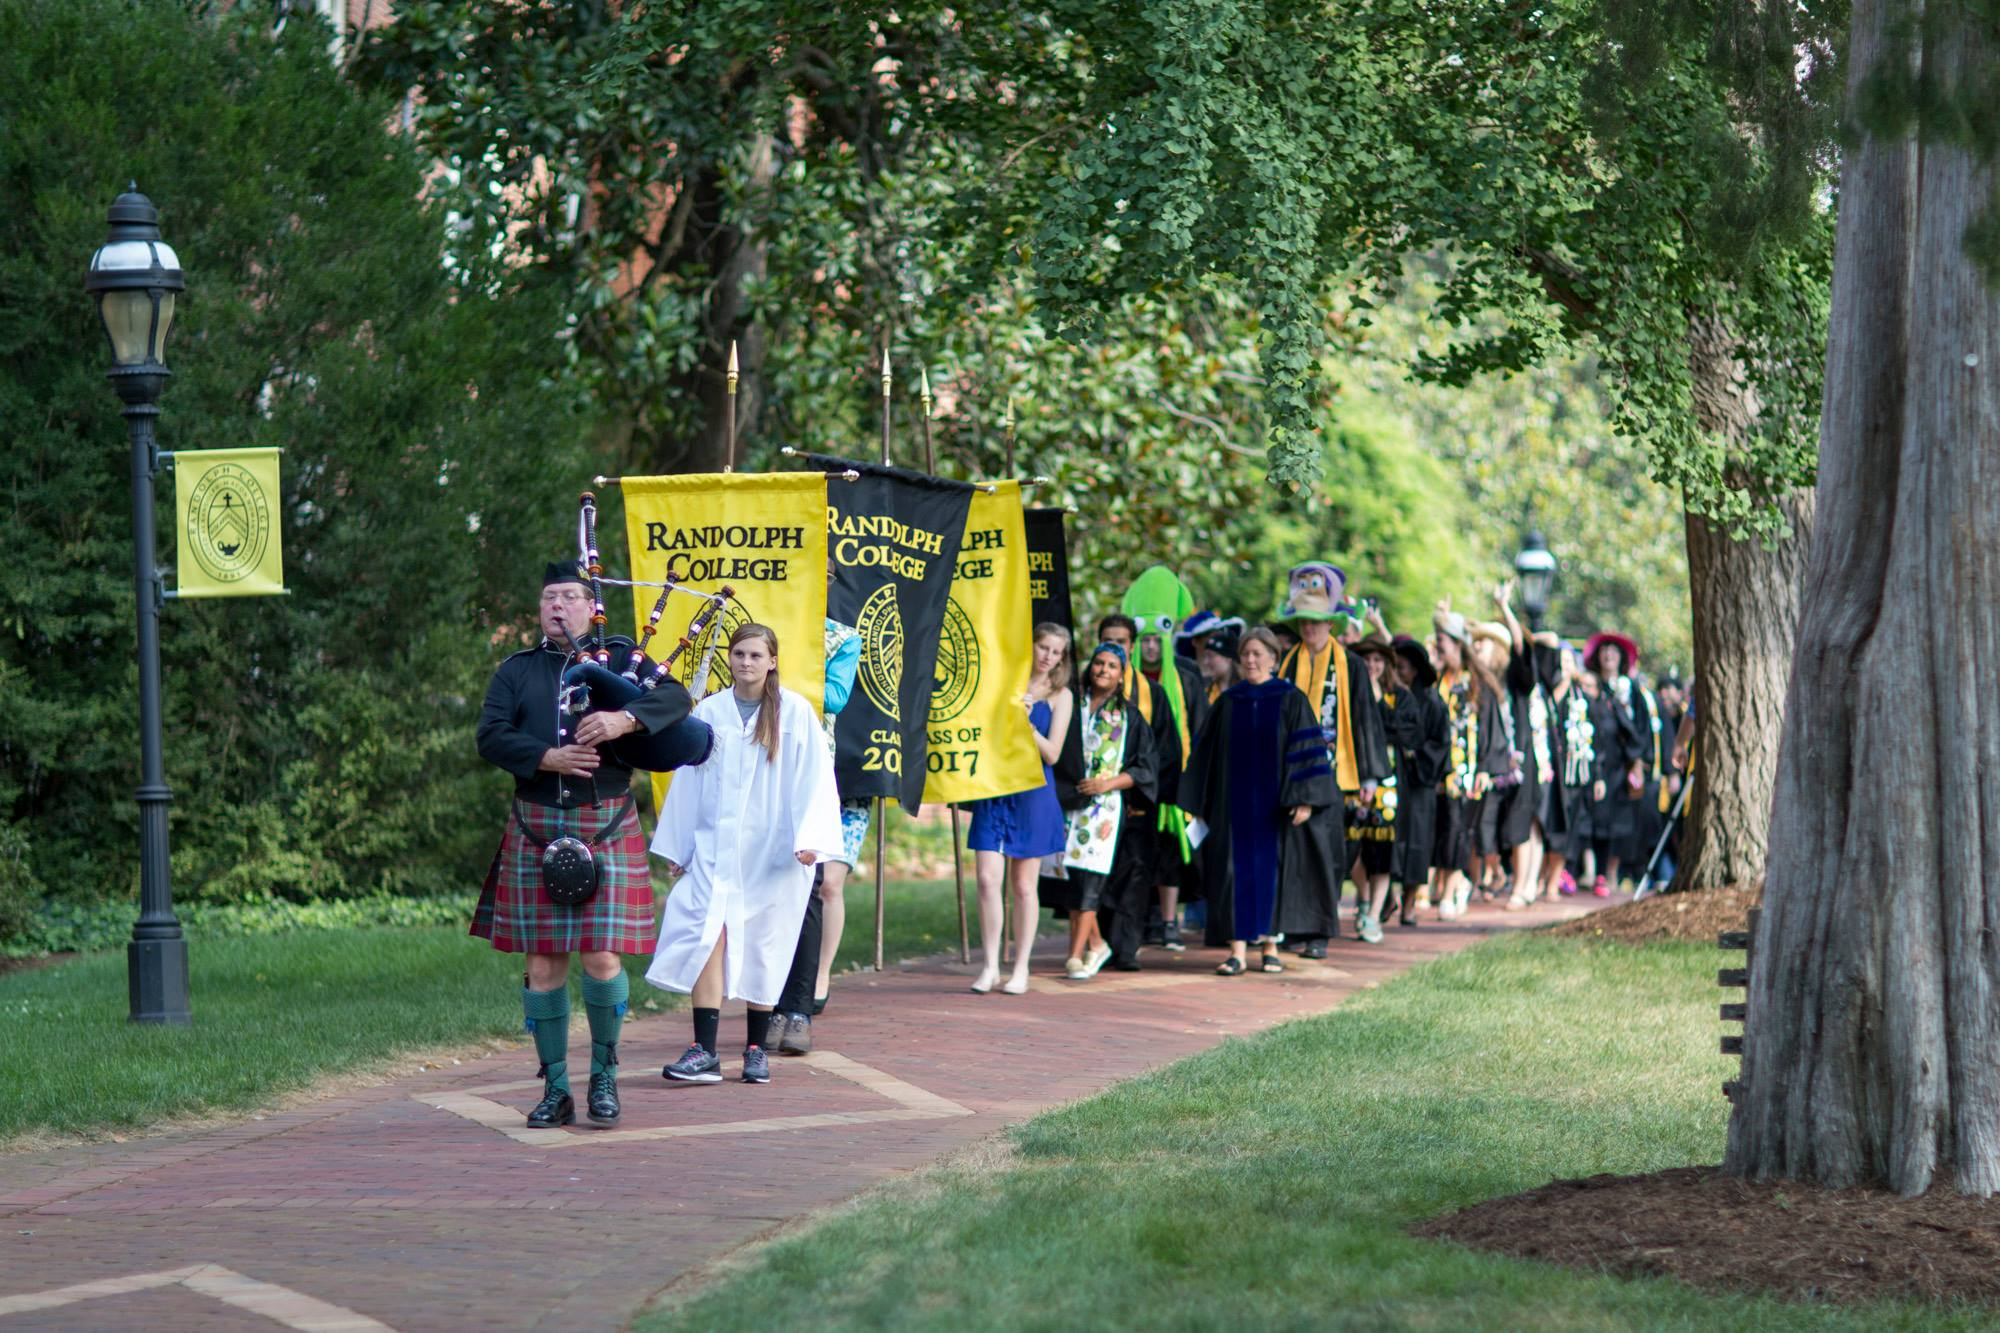 Procession to 2015 Convocation